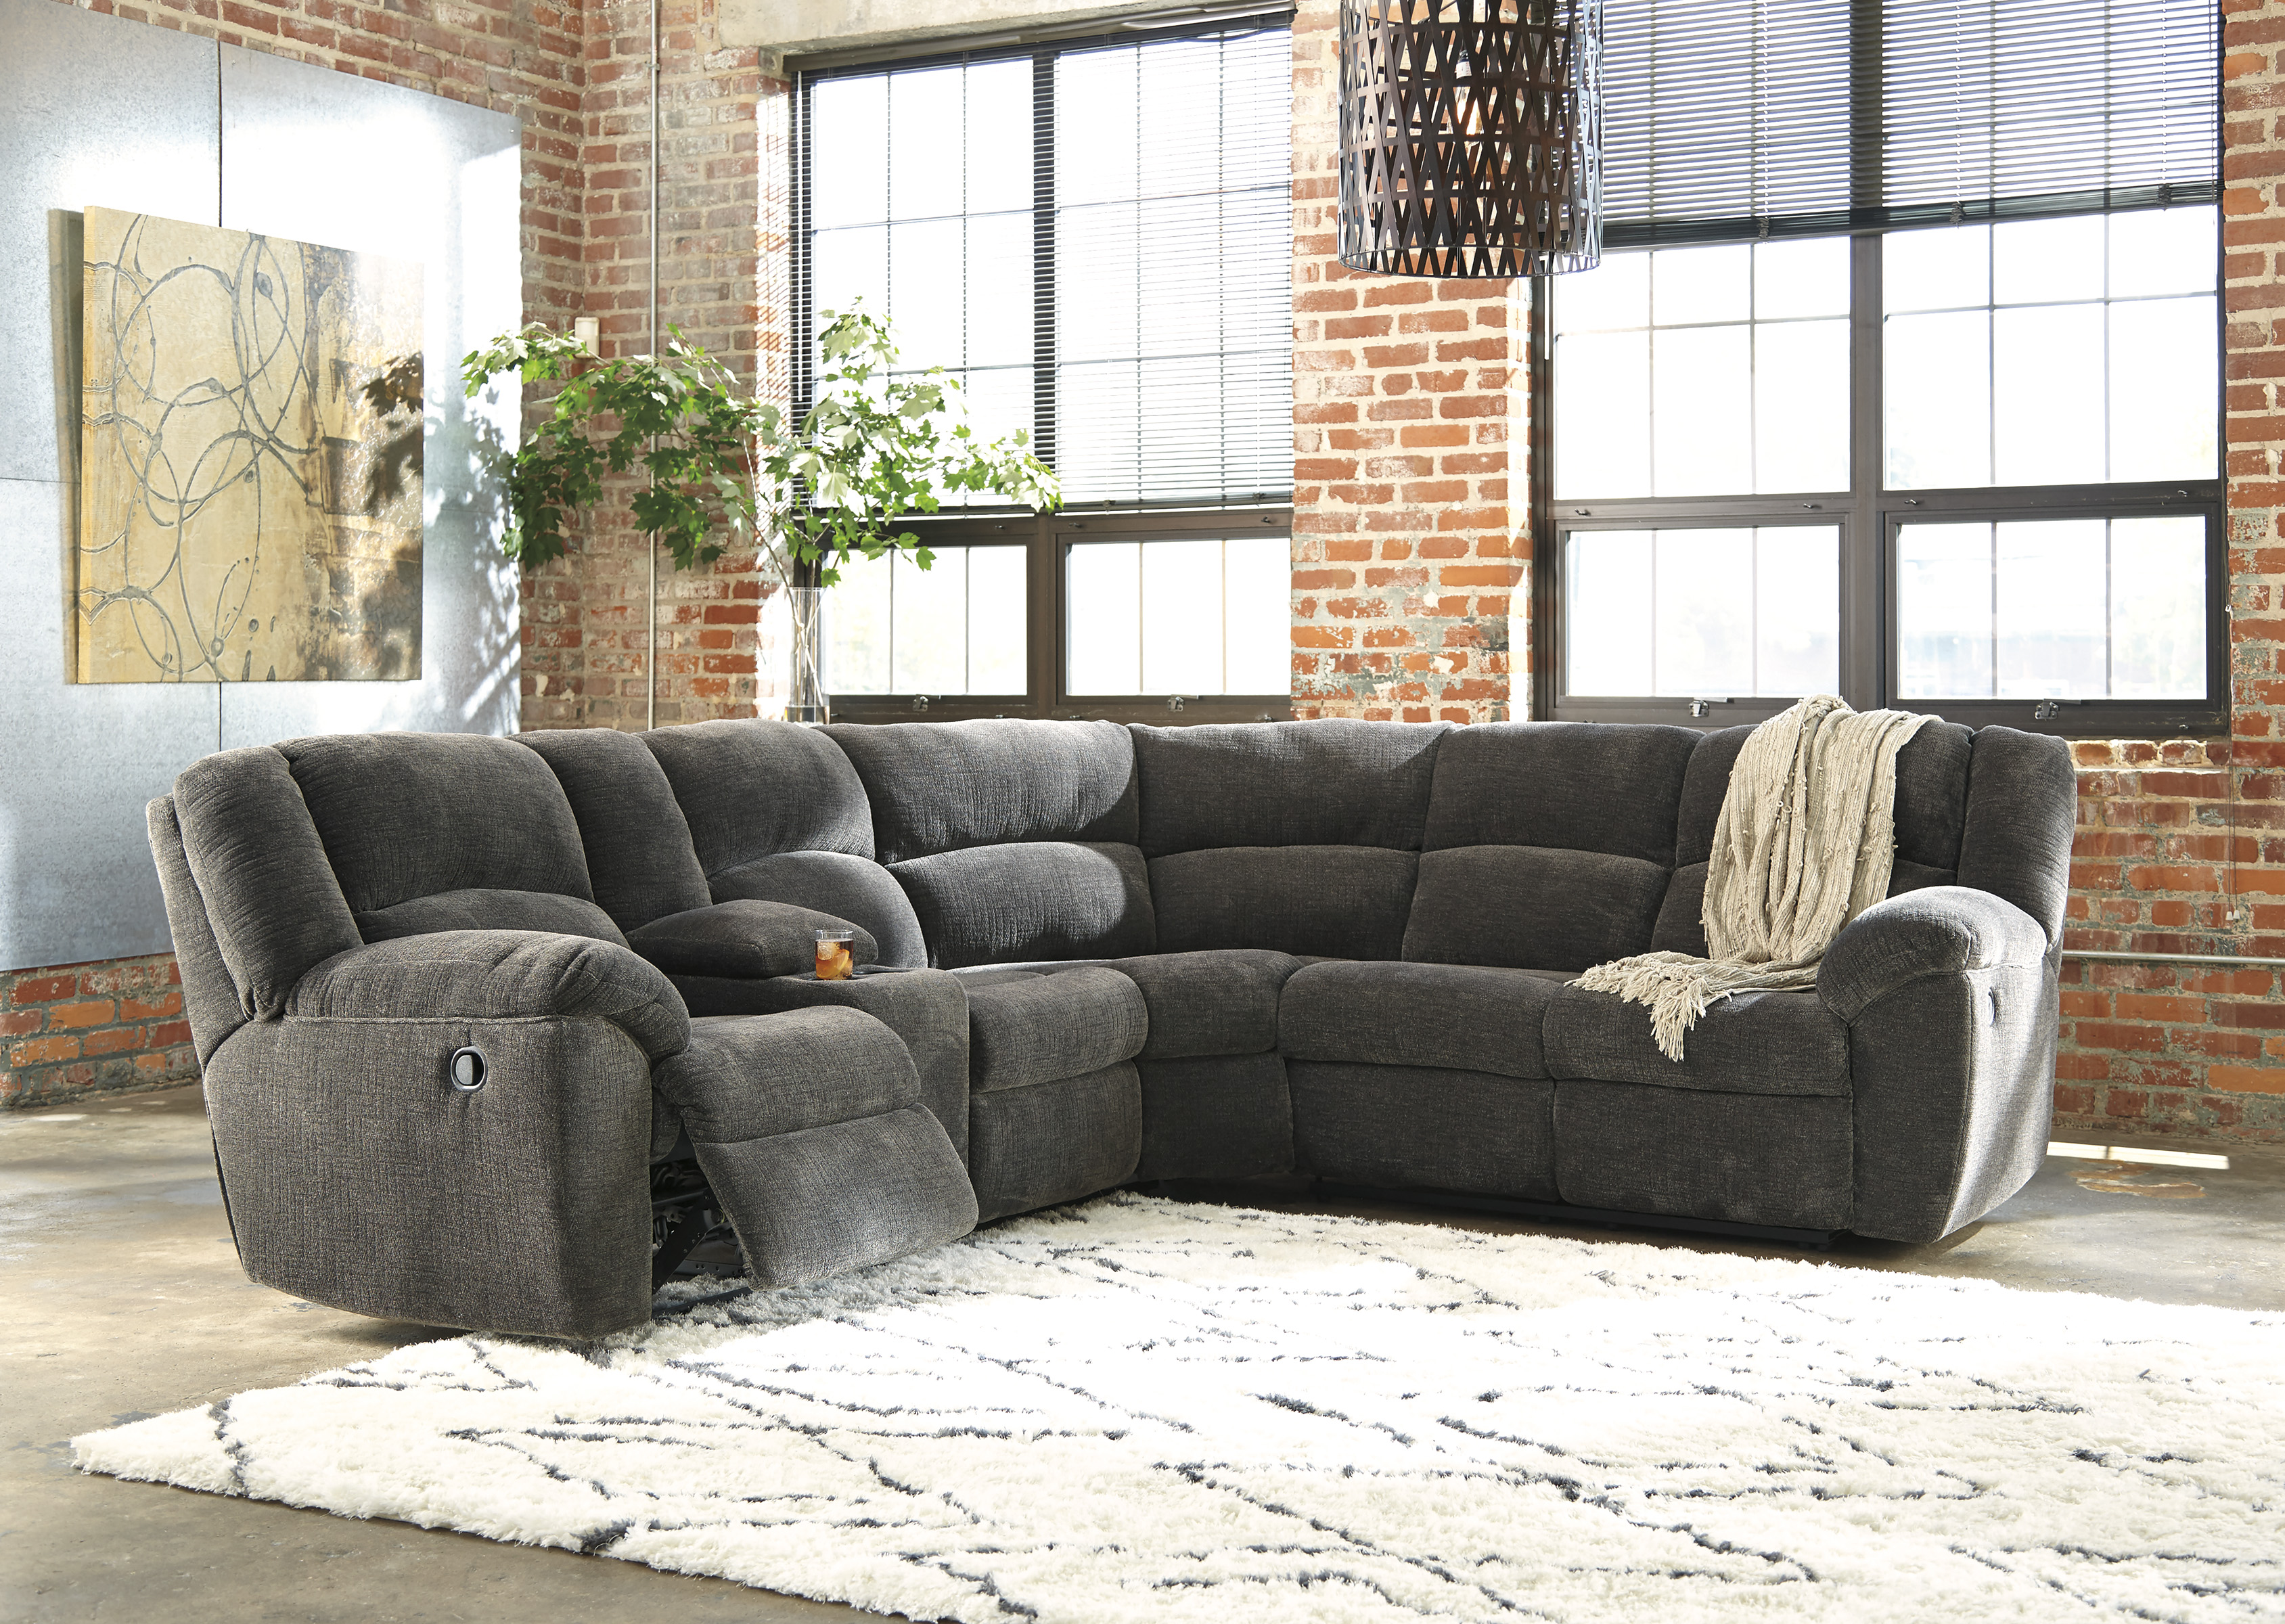 bad rental to ideas sofa of credit fresh rent stores furniture cleaning home own magnificent